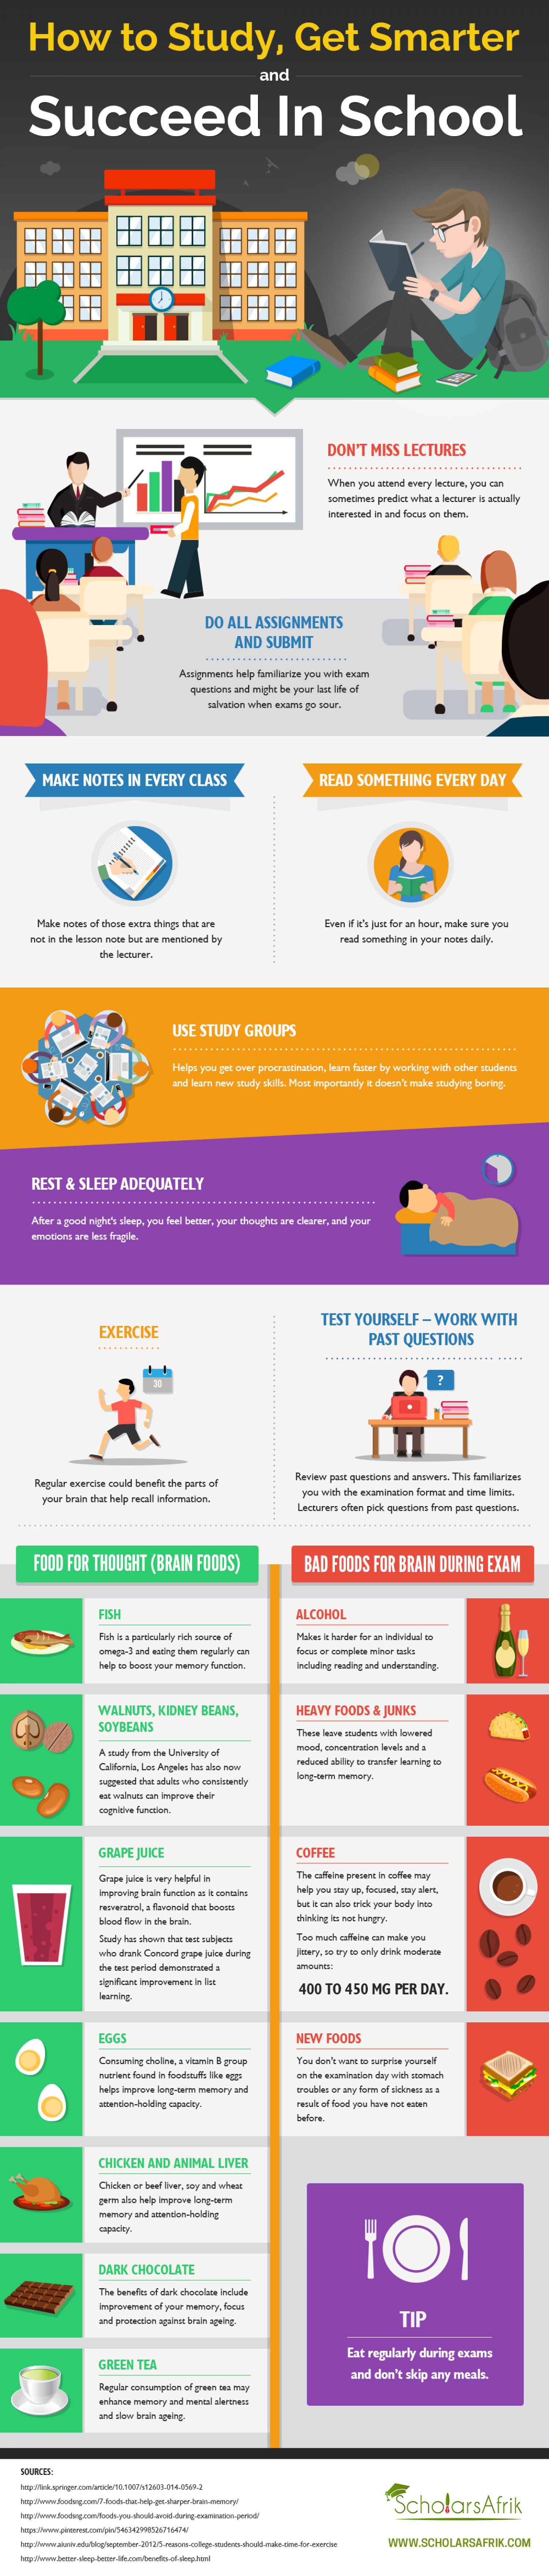 How To Study, Get Smarter & Succeed In School Infographic